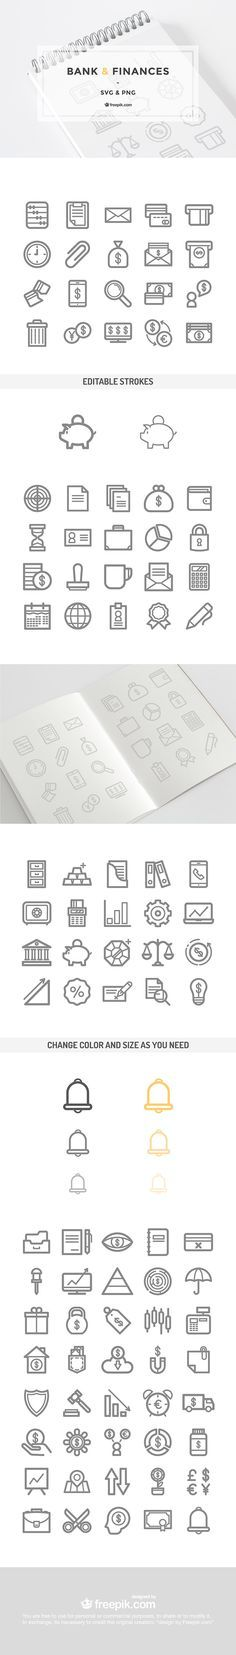 80 free bank and finances icons SVG & PNG set